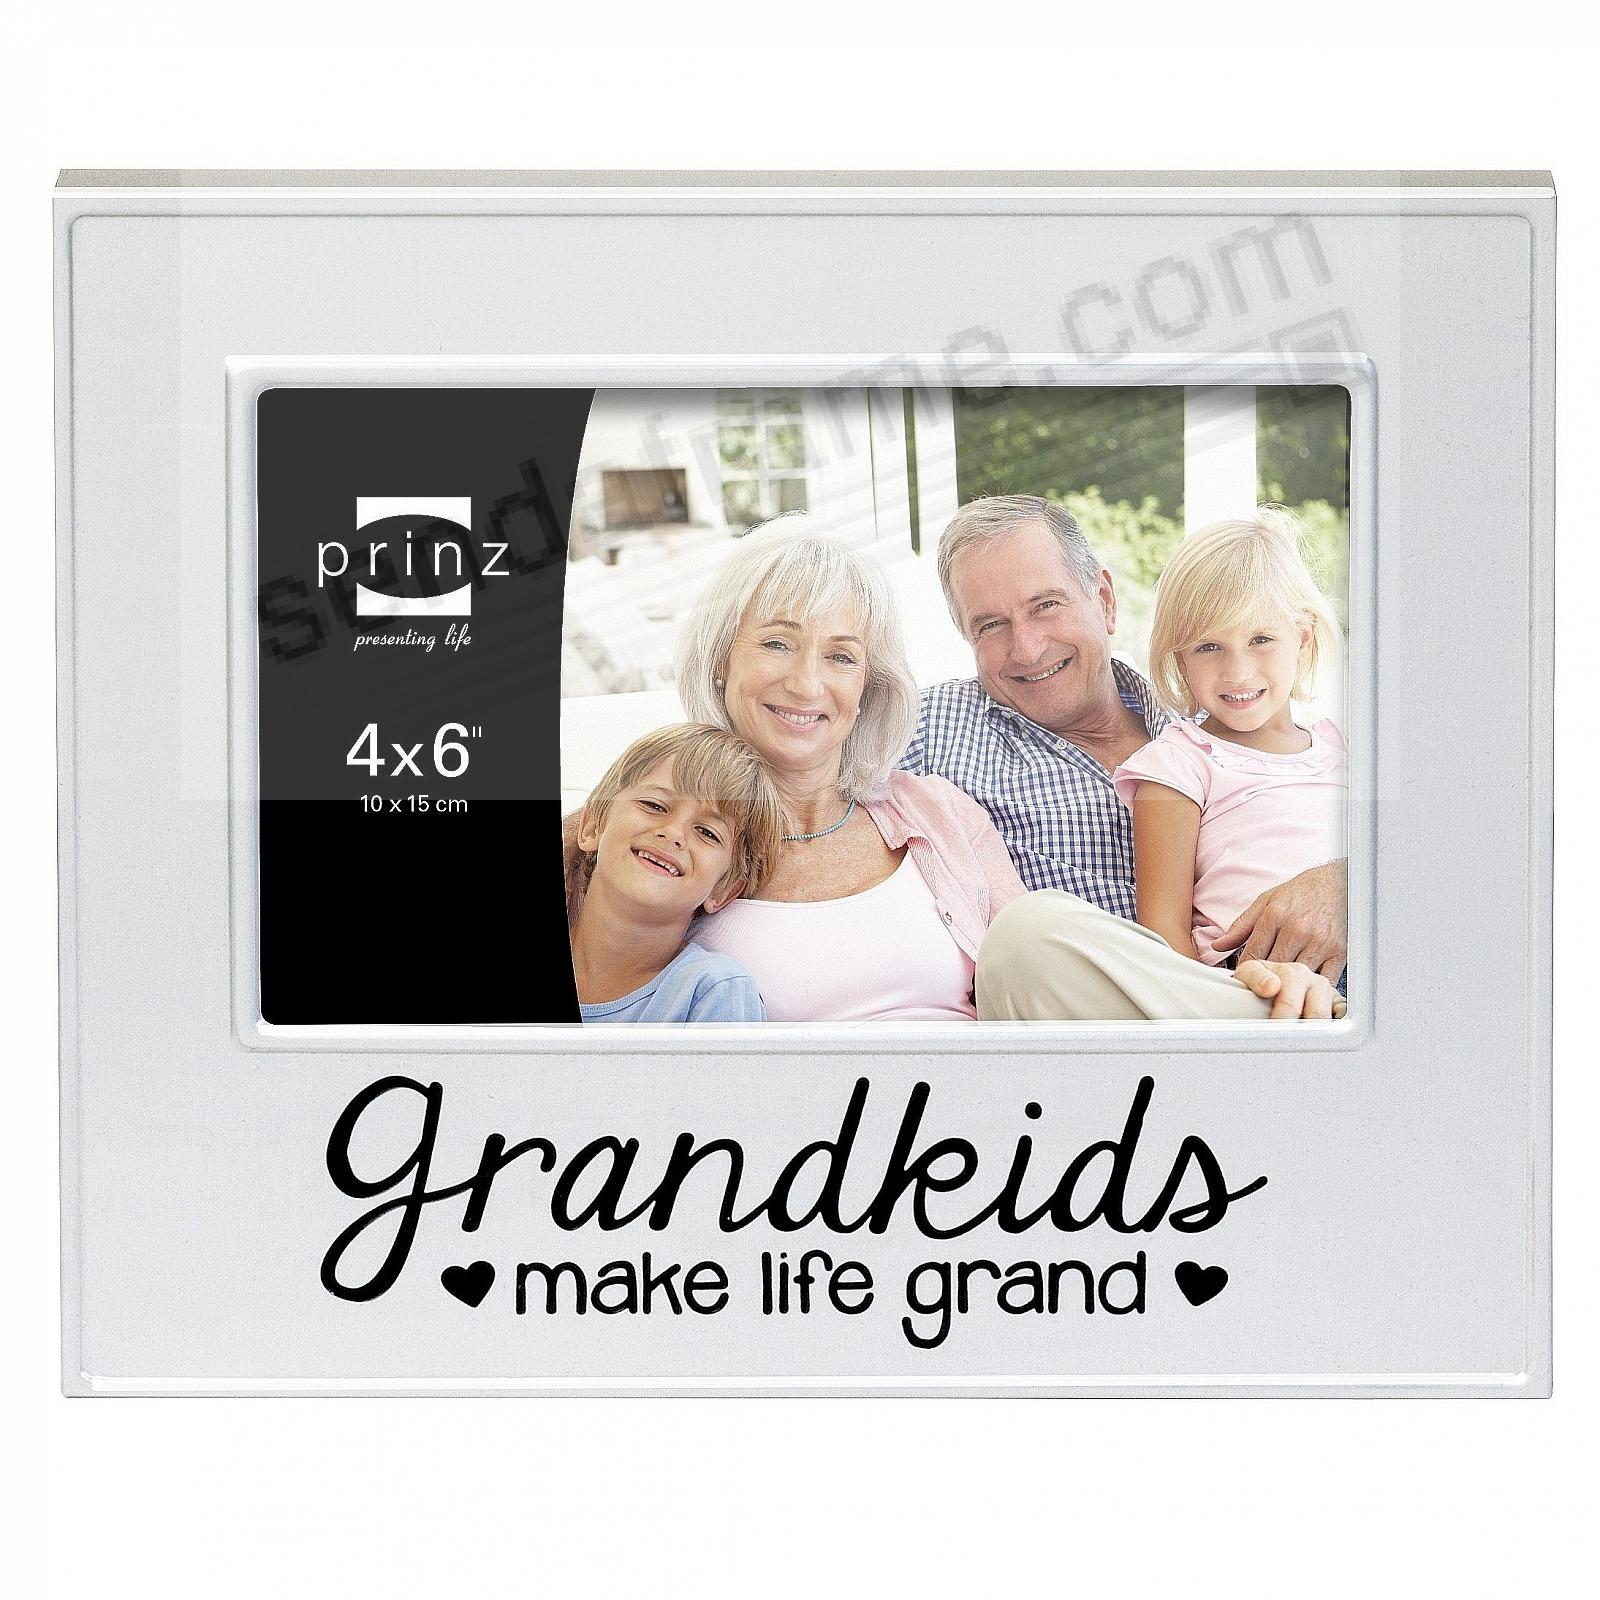 GRANDKIDS Make Life Grand Brushed Silver 6x4 frame by Prinz ...